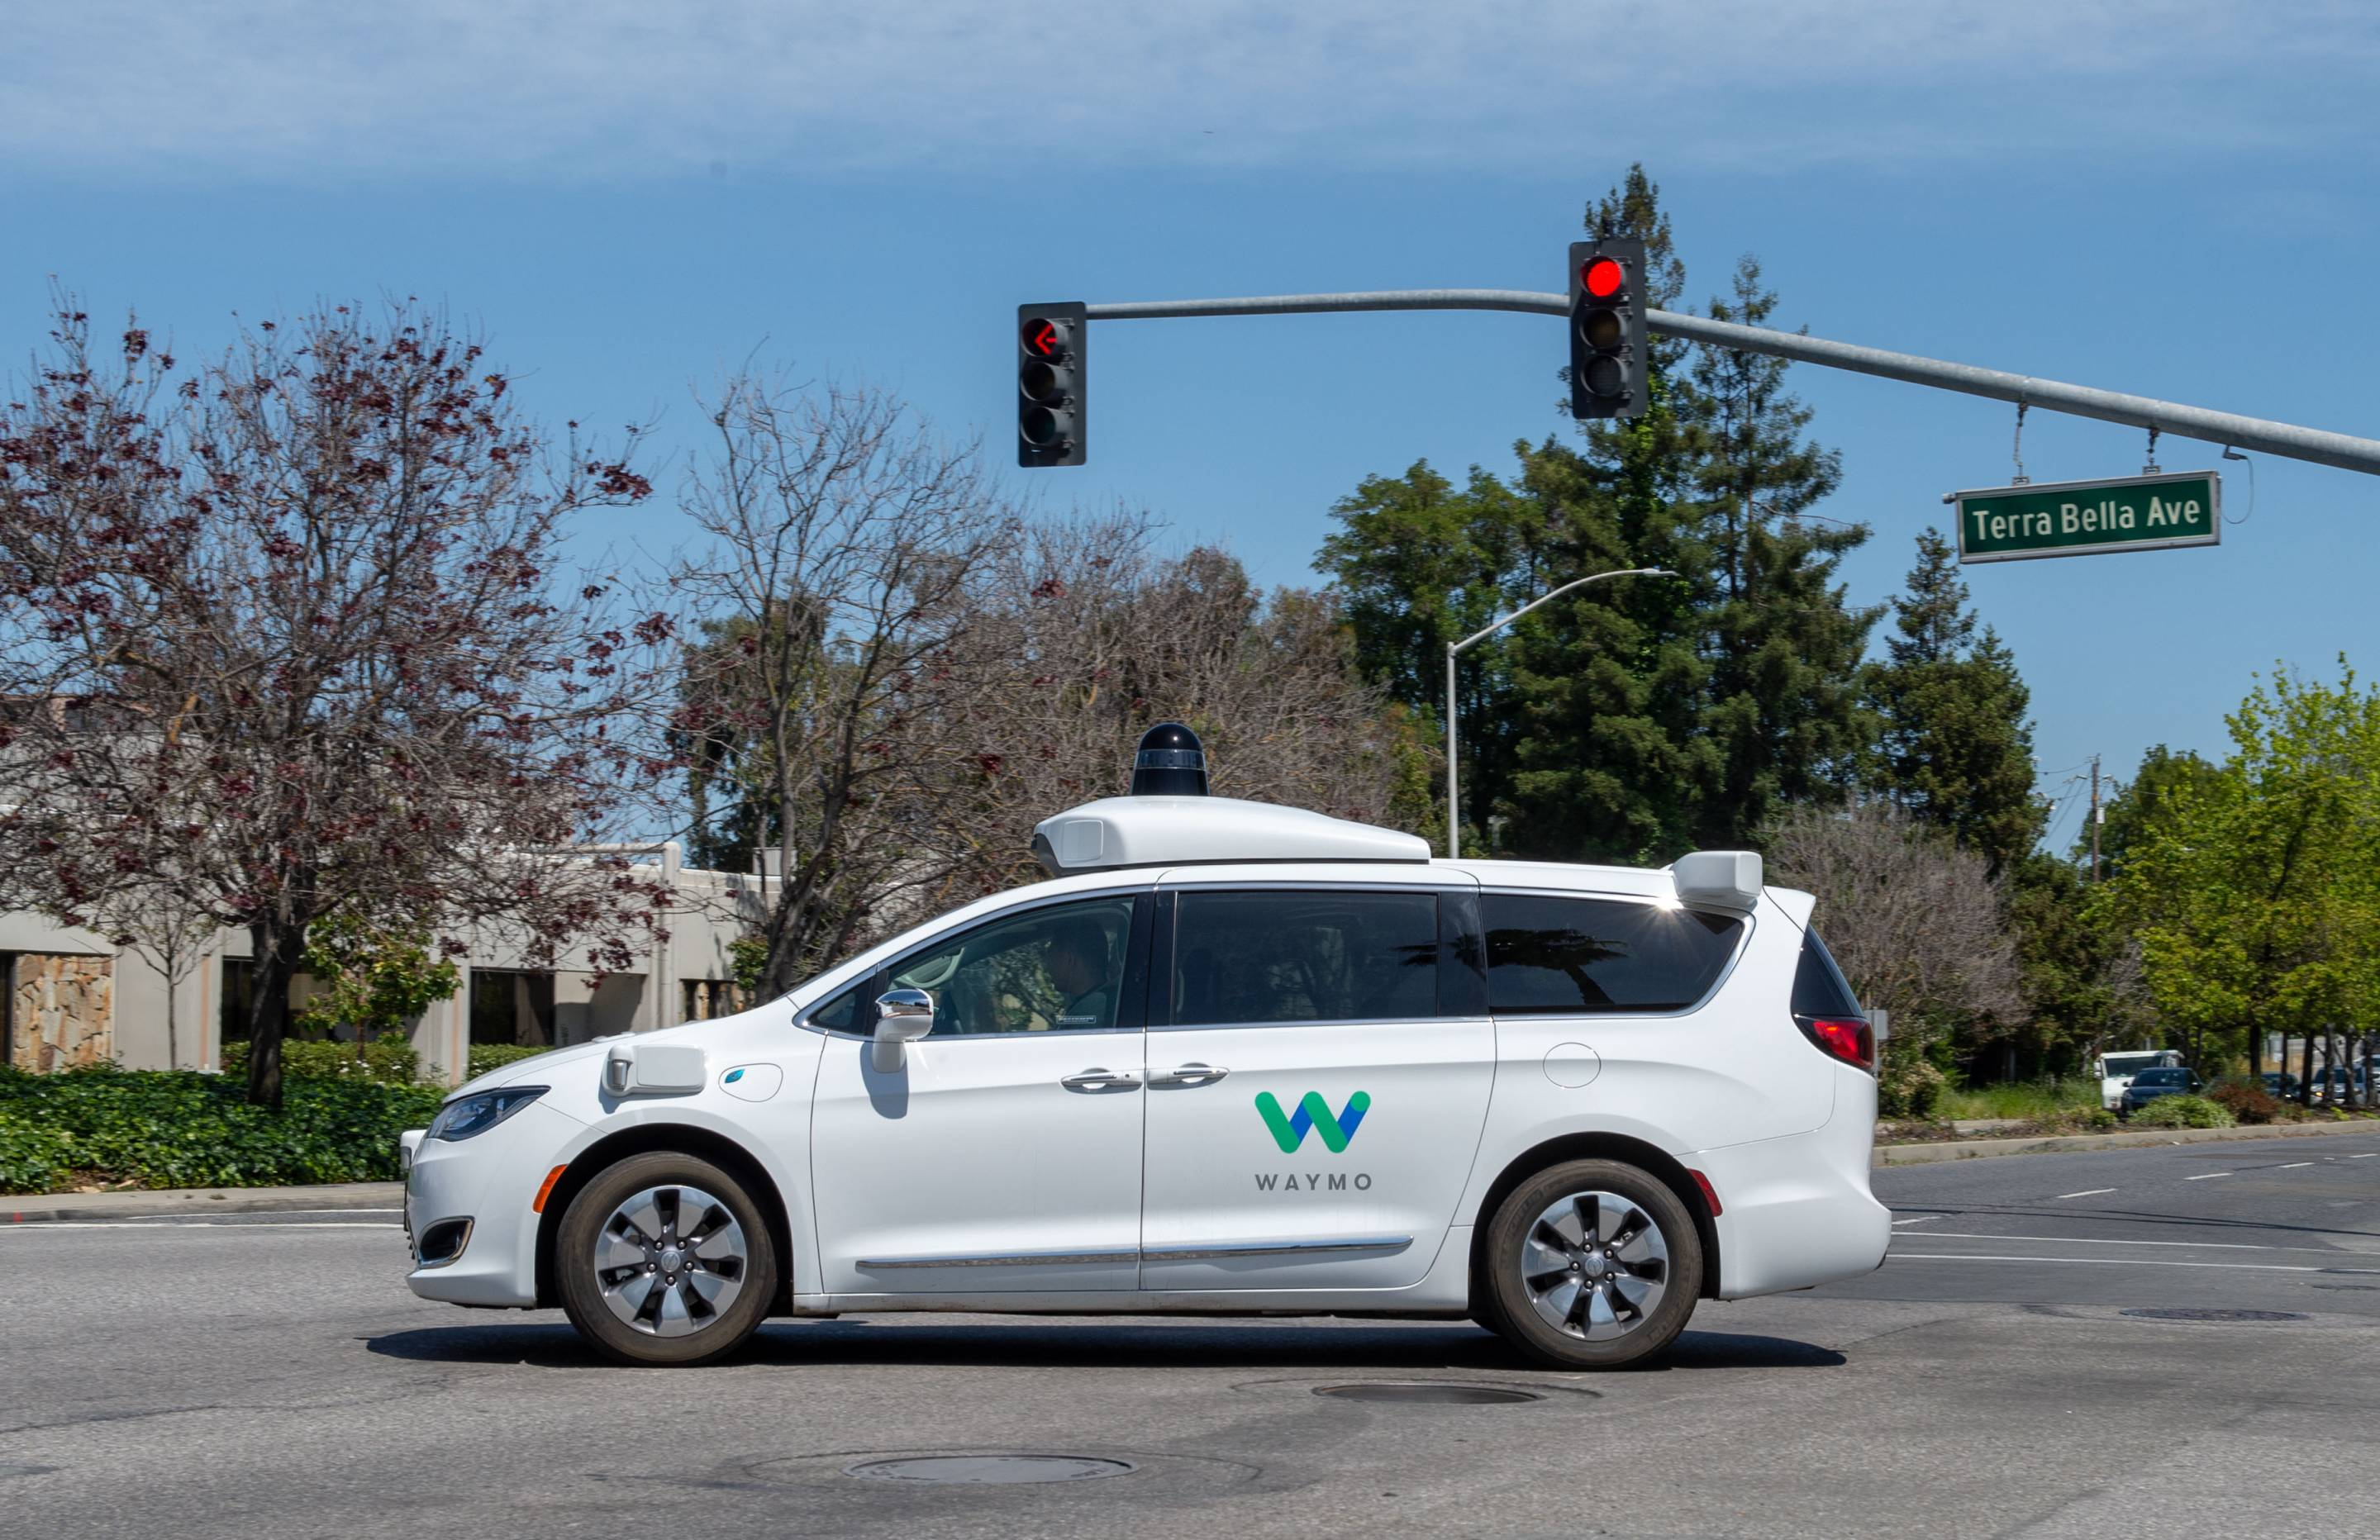 Self-propelled car from Google sister company Waymo